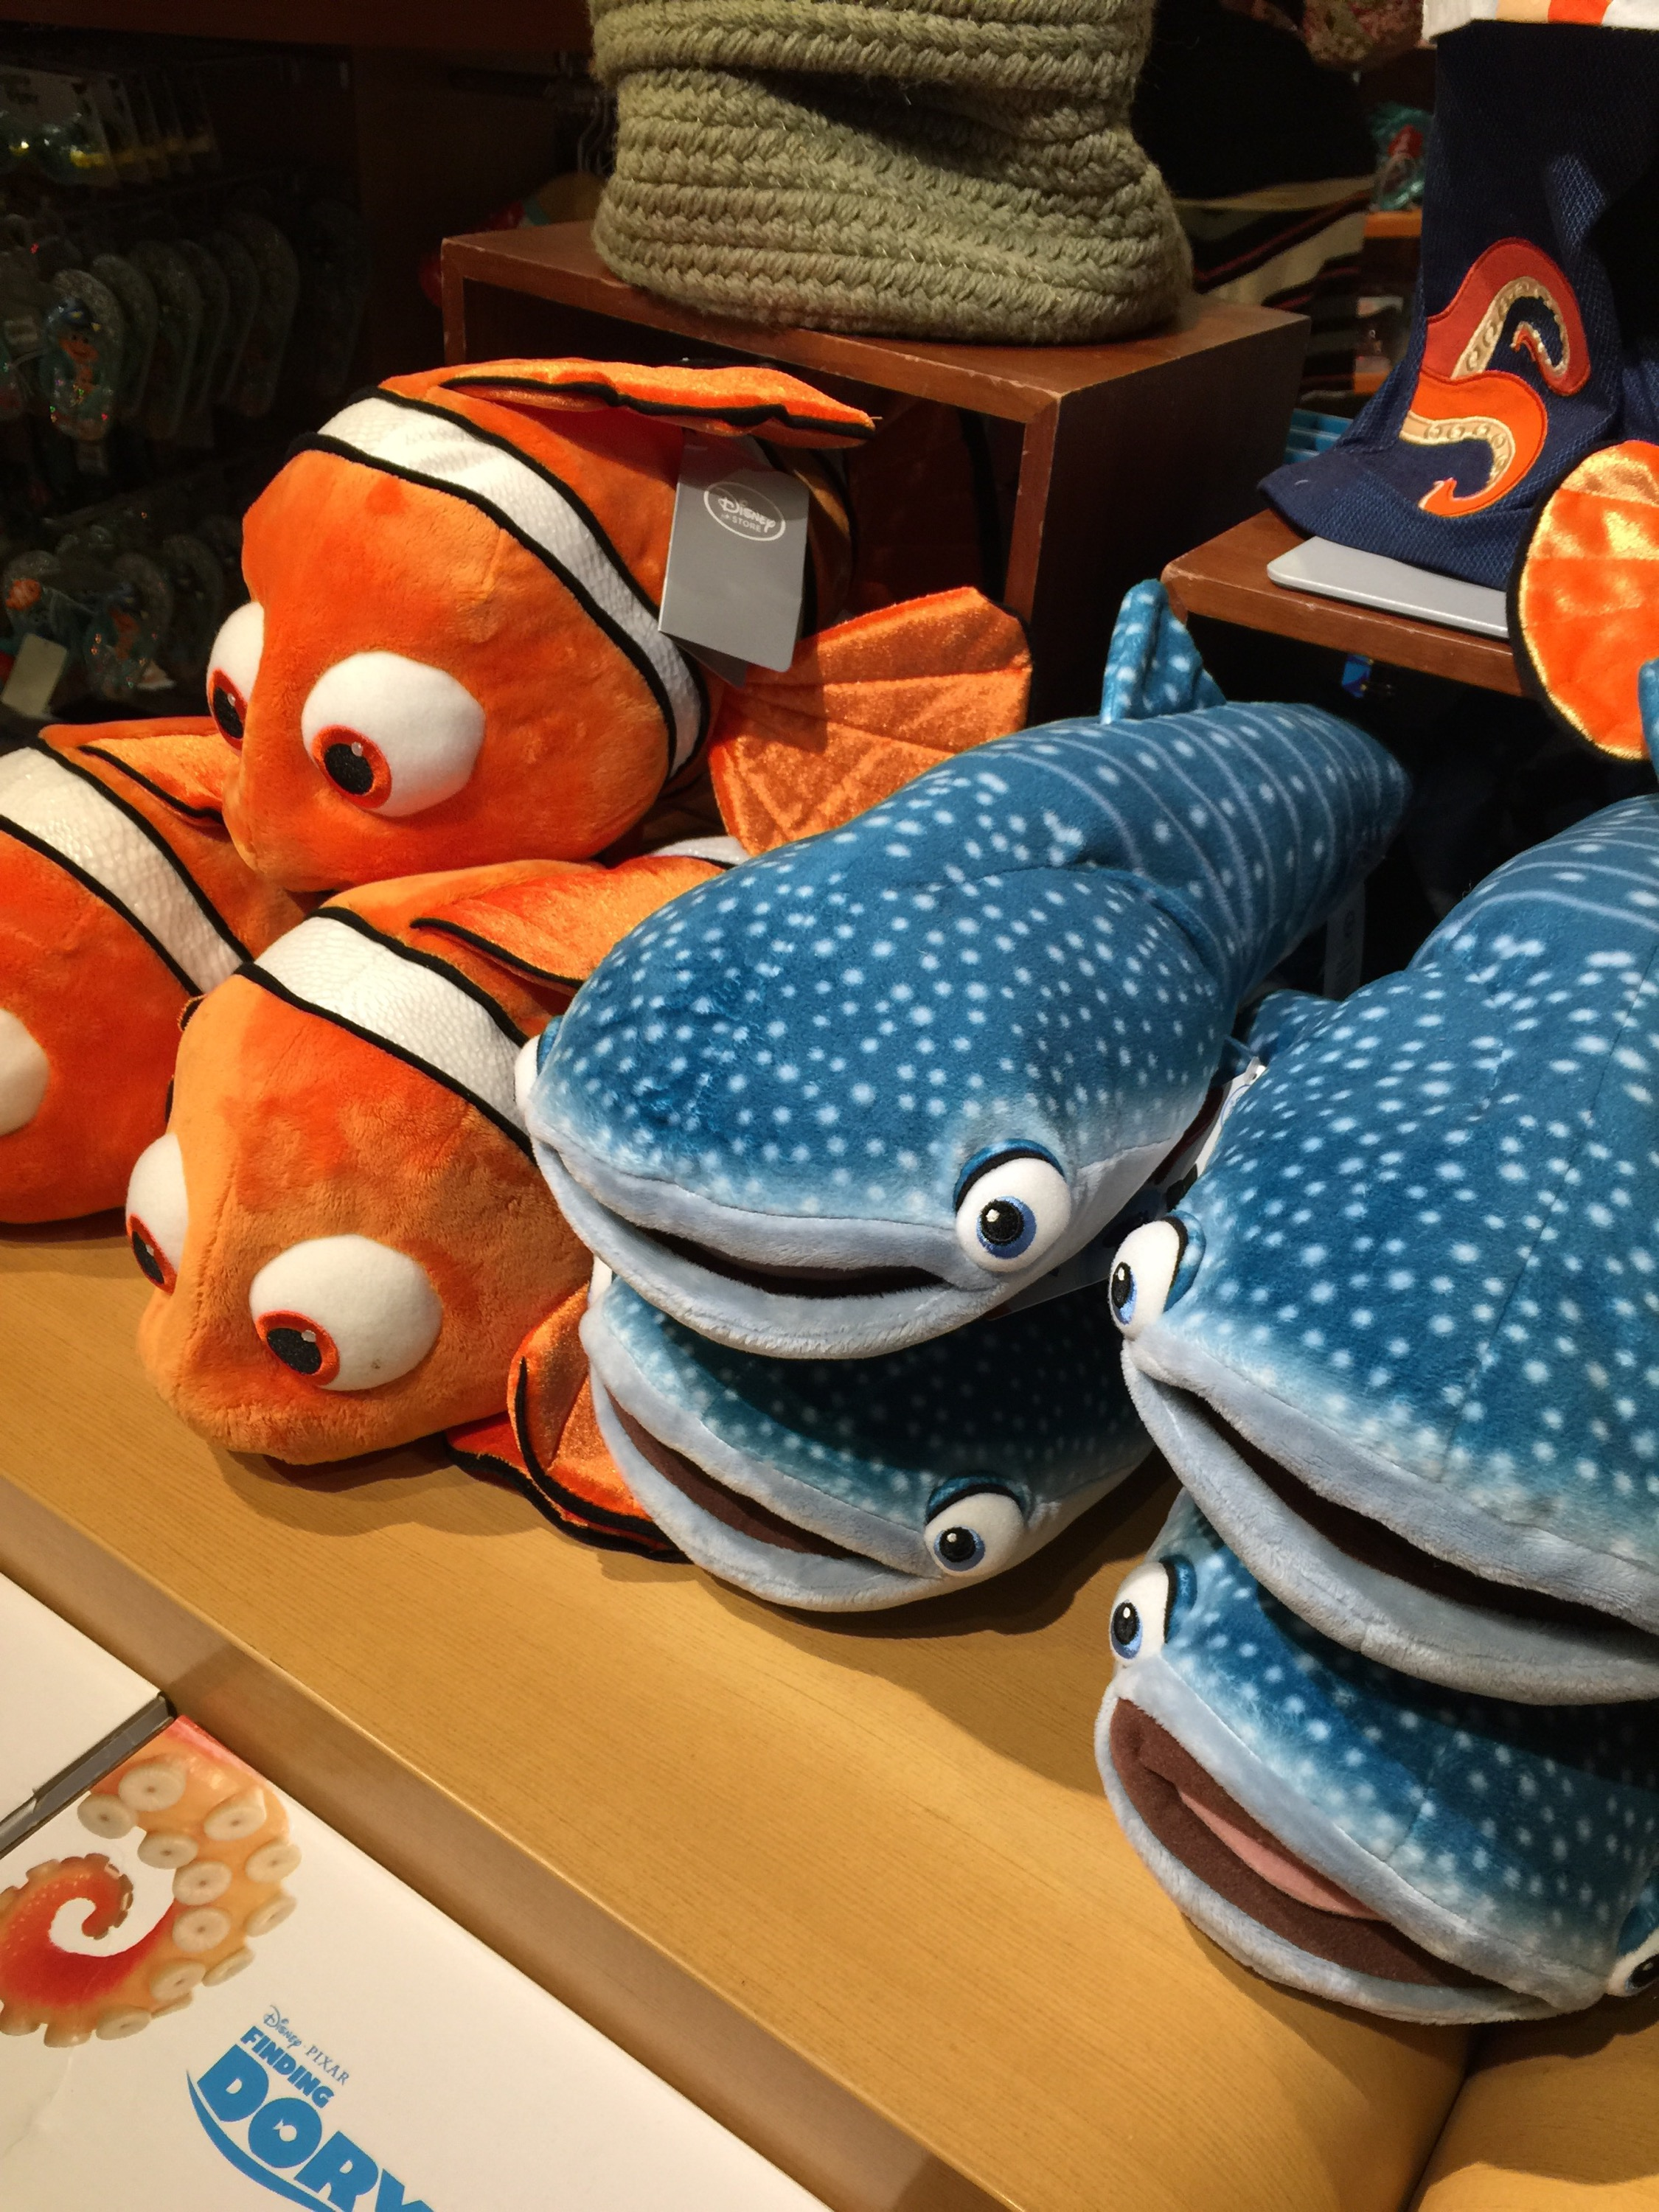 Disney Store Toys : Video finding dory toys bathing suits plush galore